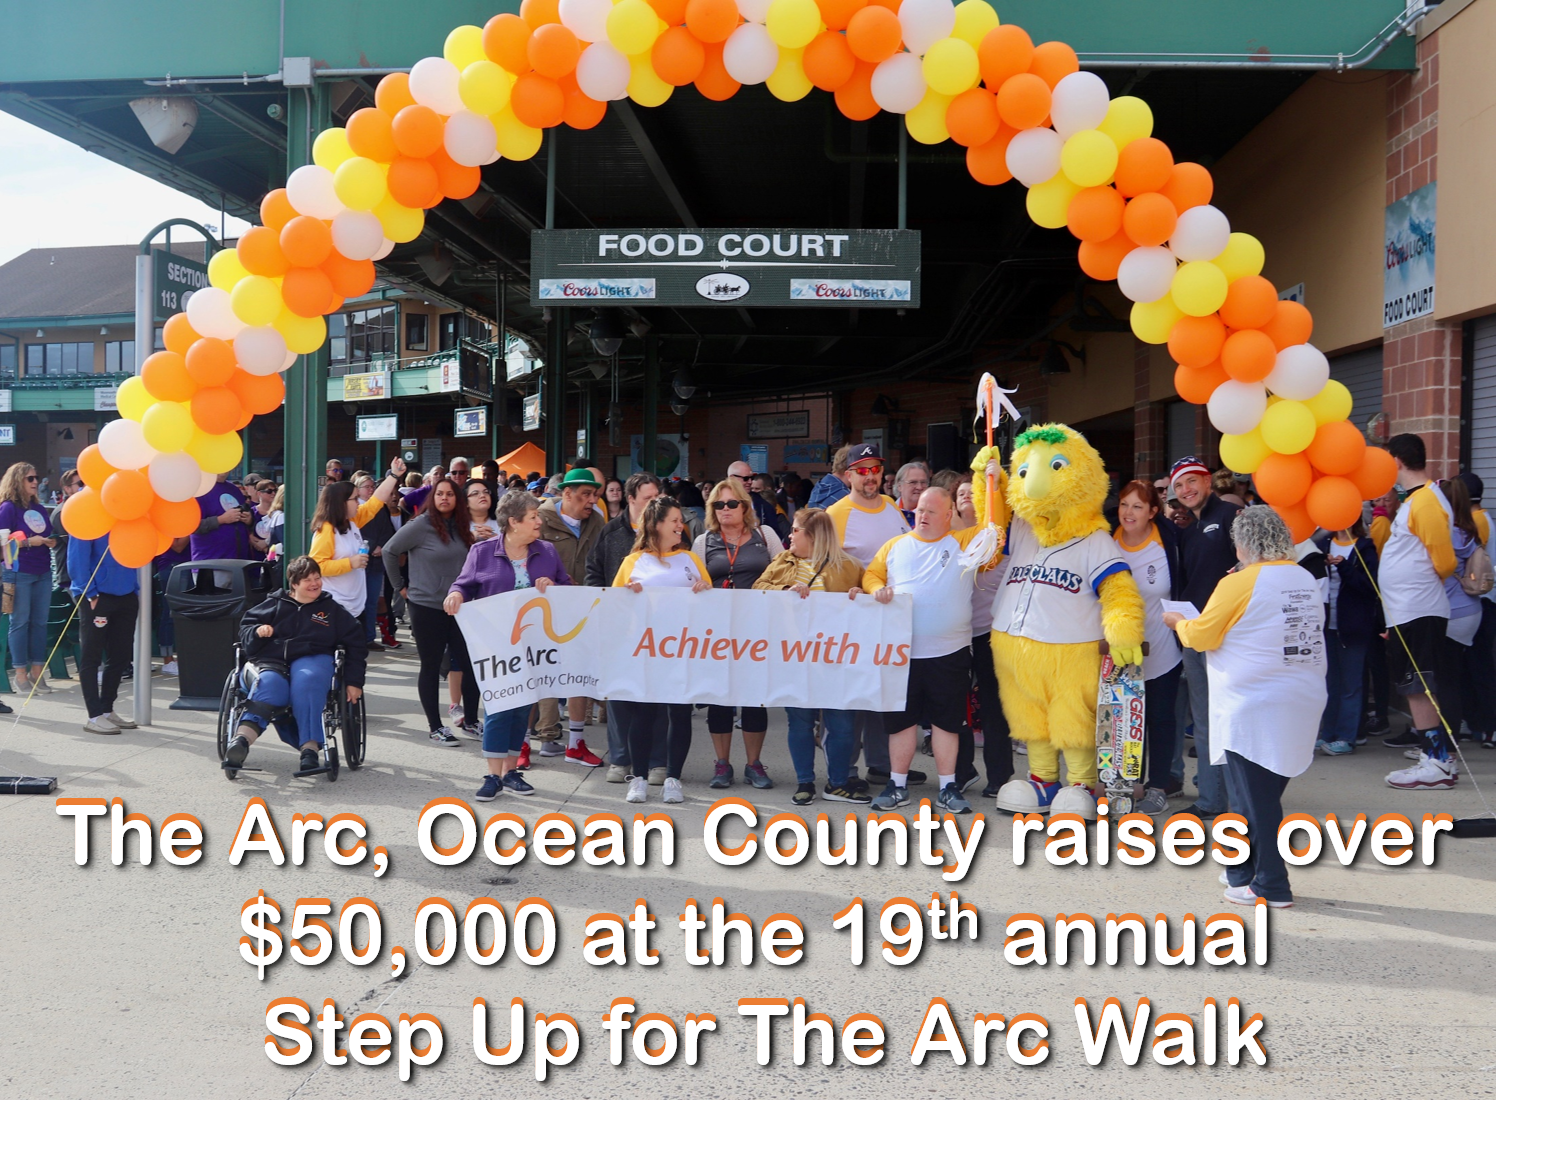 2019 Step Up for The Arc Walk Raises over $50,000